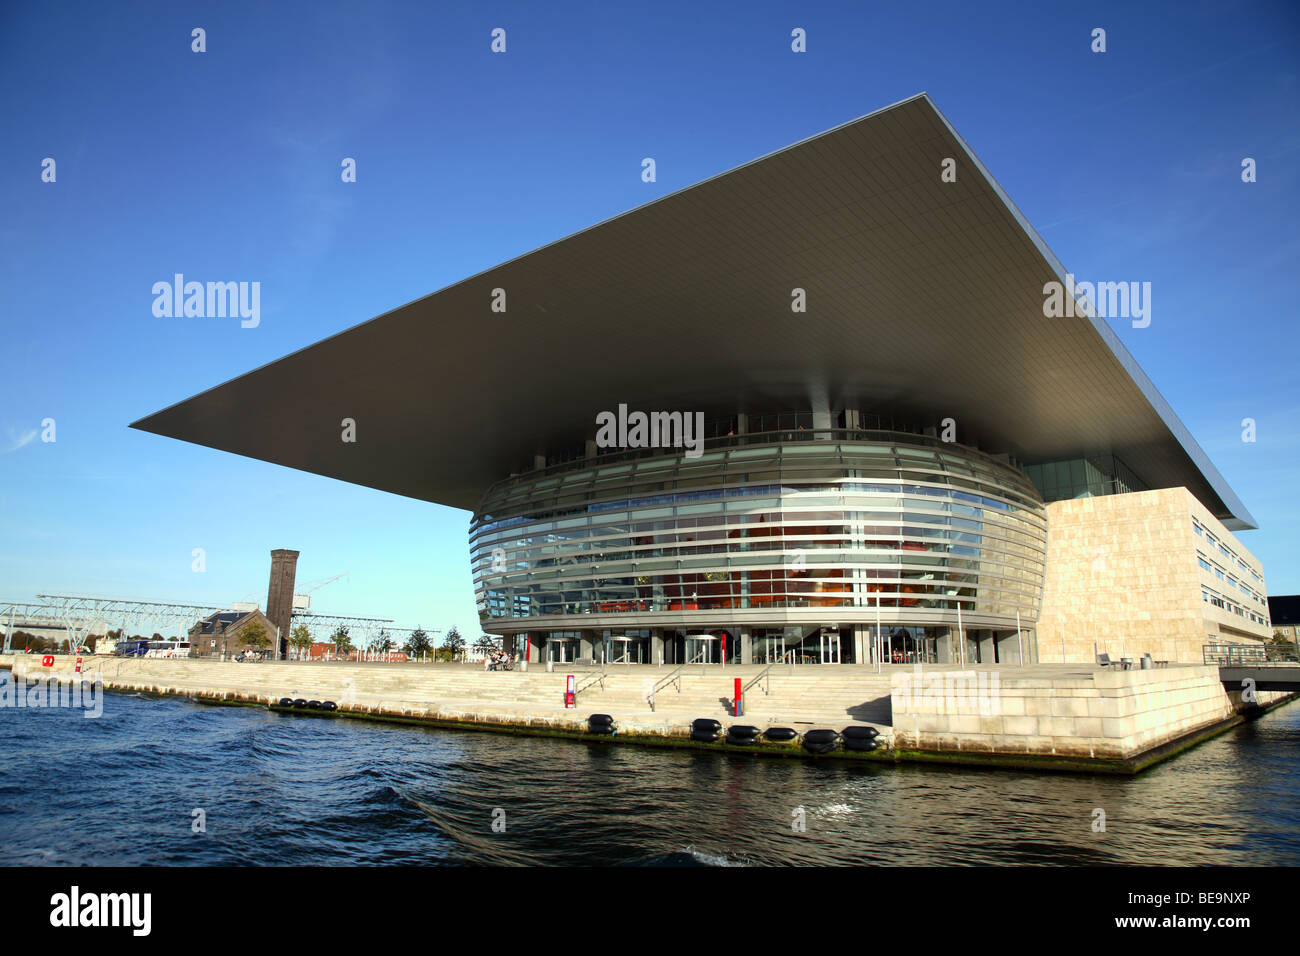 The New Copenhagen Opera House On The Waterfront In The Port Of Stock Photo Royalty Free Image